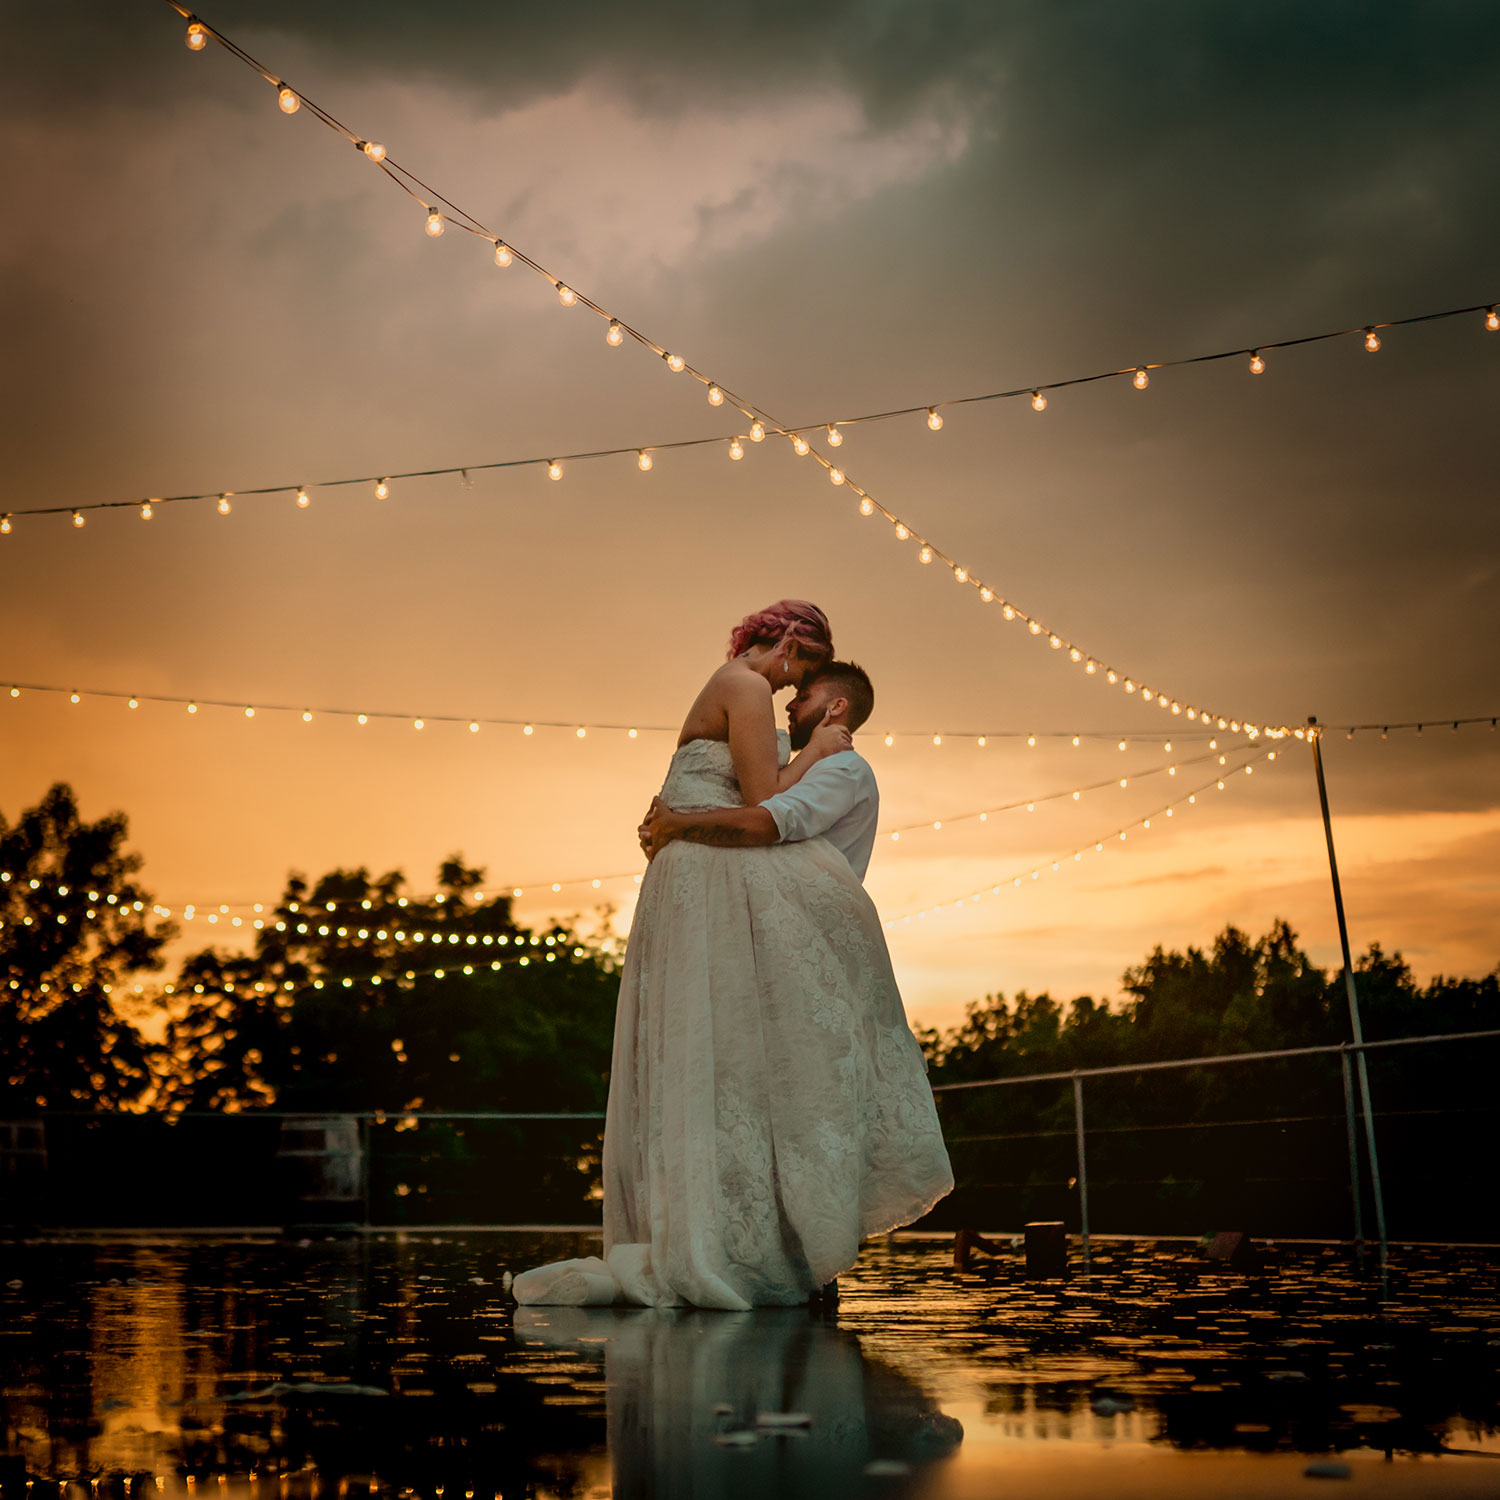 groom-holding-bride-in-arms-in-rain-under-twinkling-lights-wedding-summerset-winery-indianola-iowa-raelyn-ramey-photography.jpg